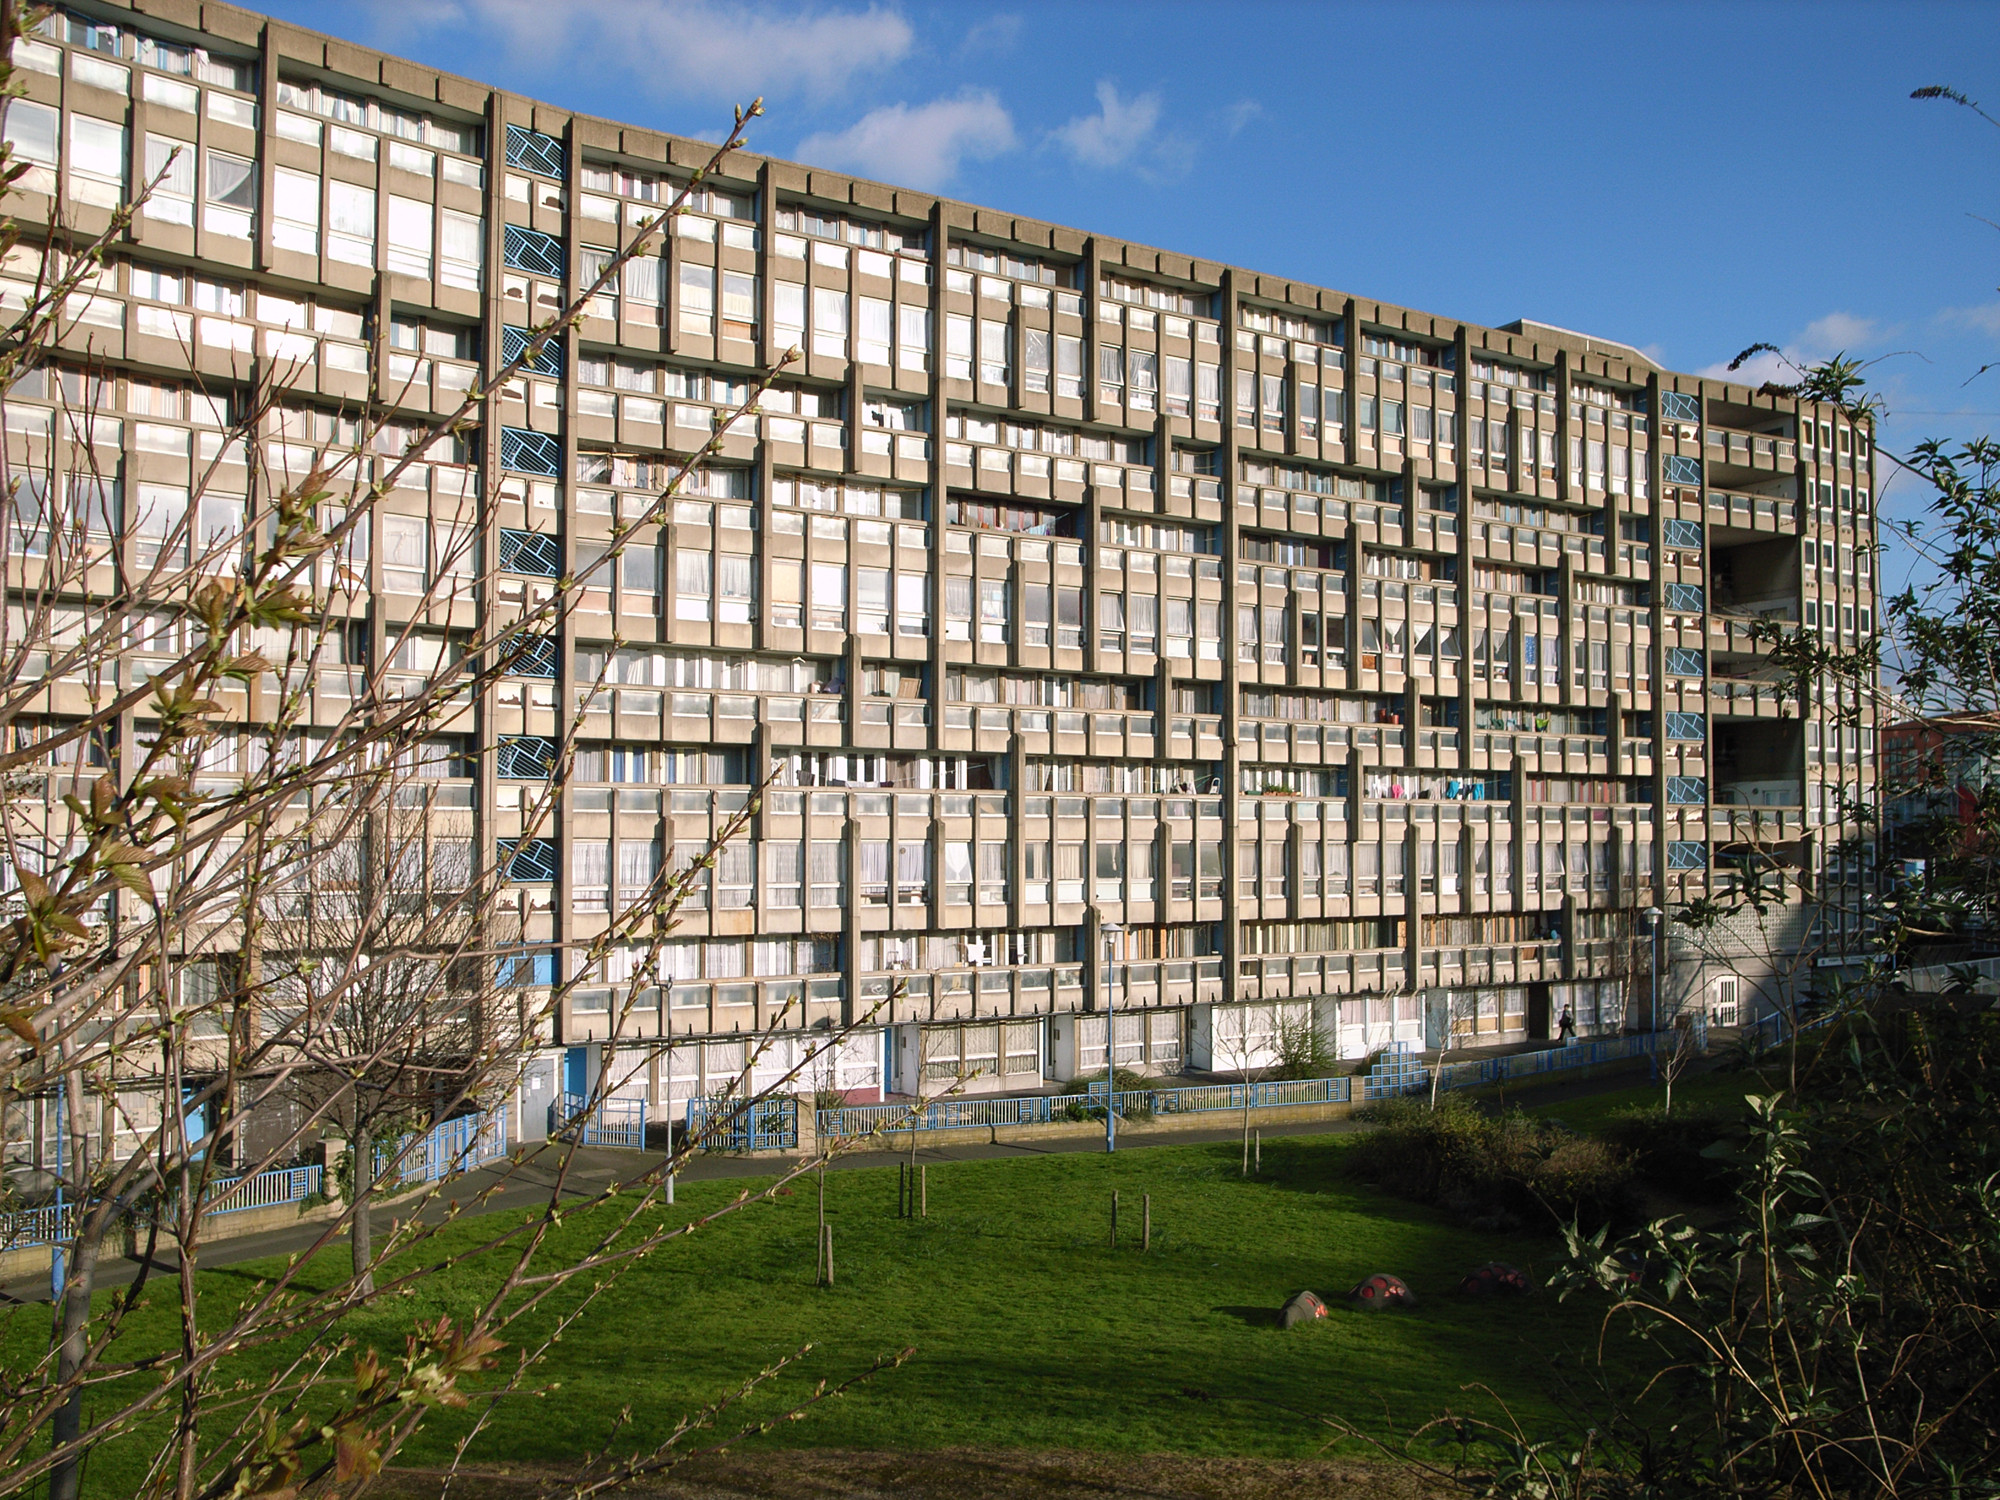 Fresh Bid To Save Robin Hood Gardens From Demolition, © Steve Cadman